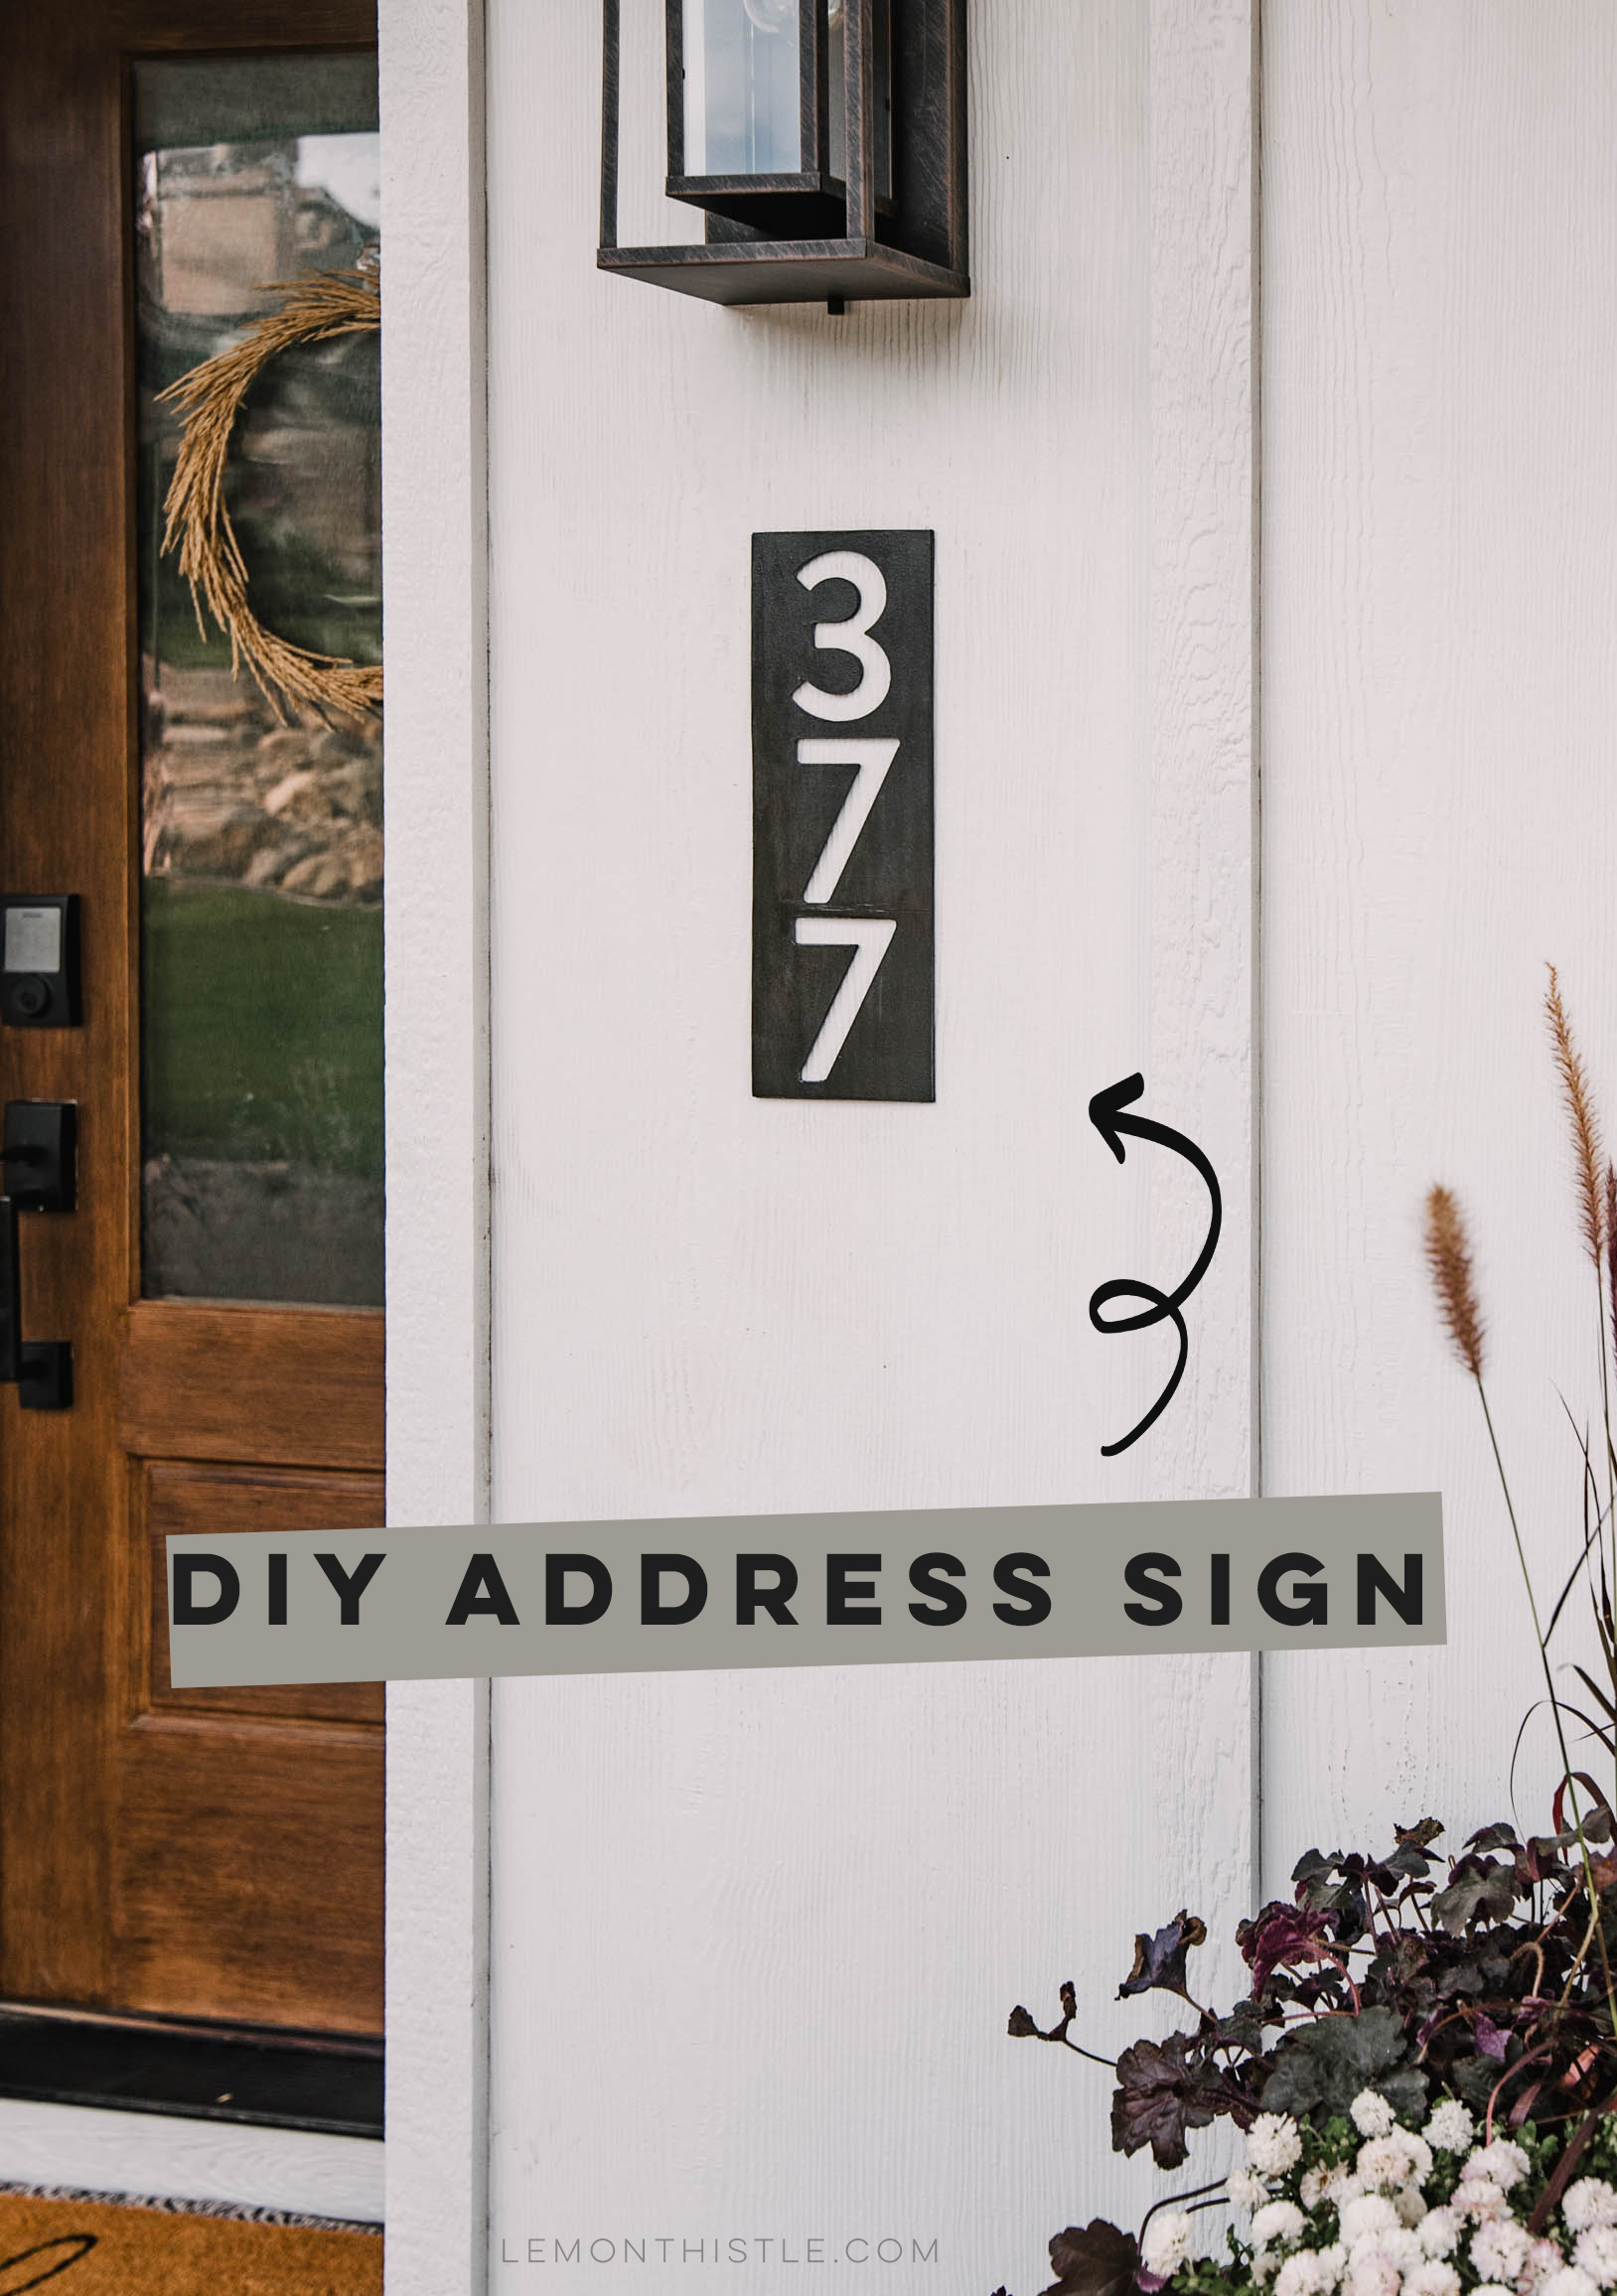 black modern address sign on white house with text overlay: DIY Address Sign